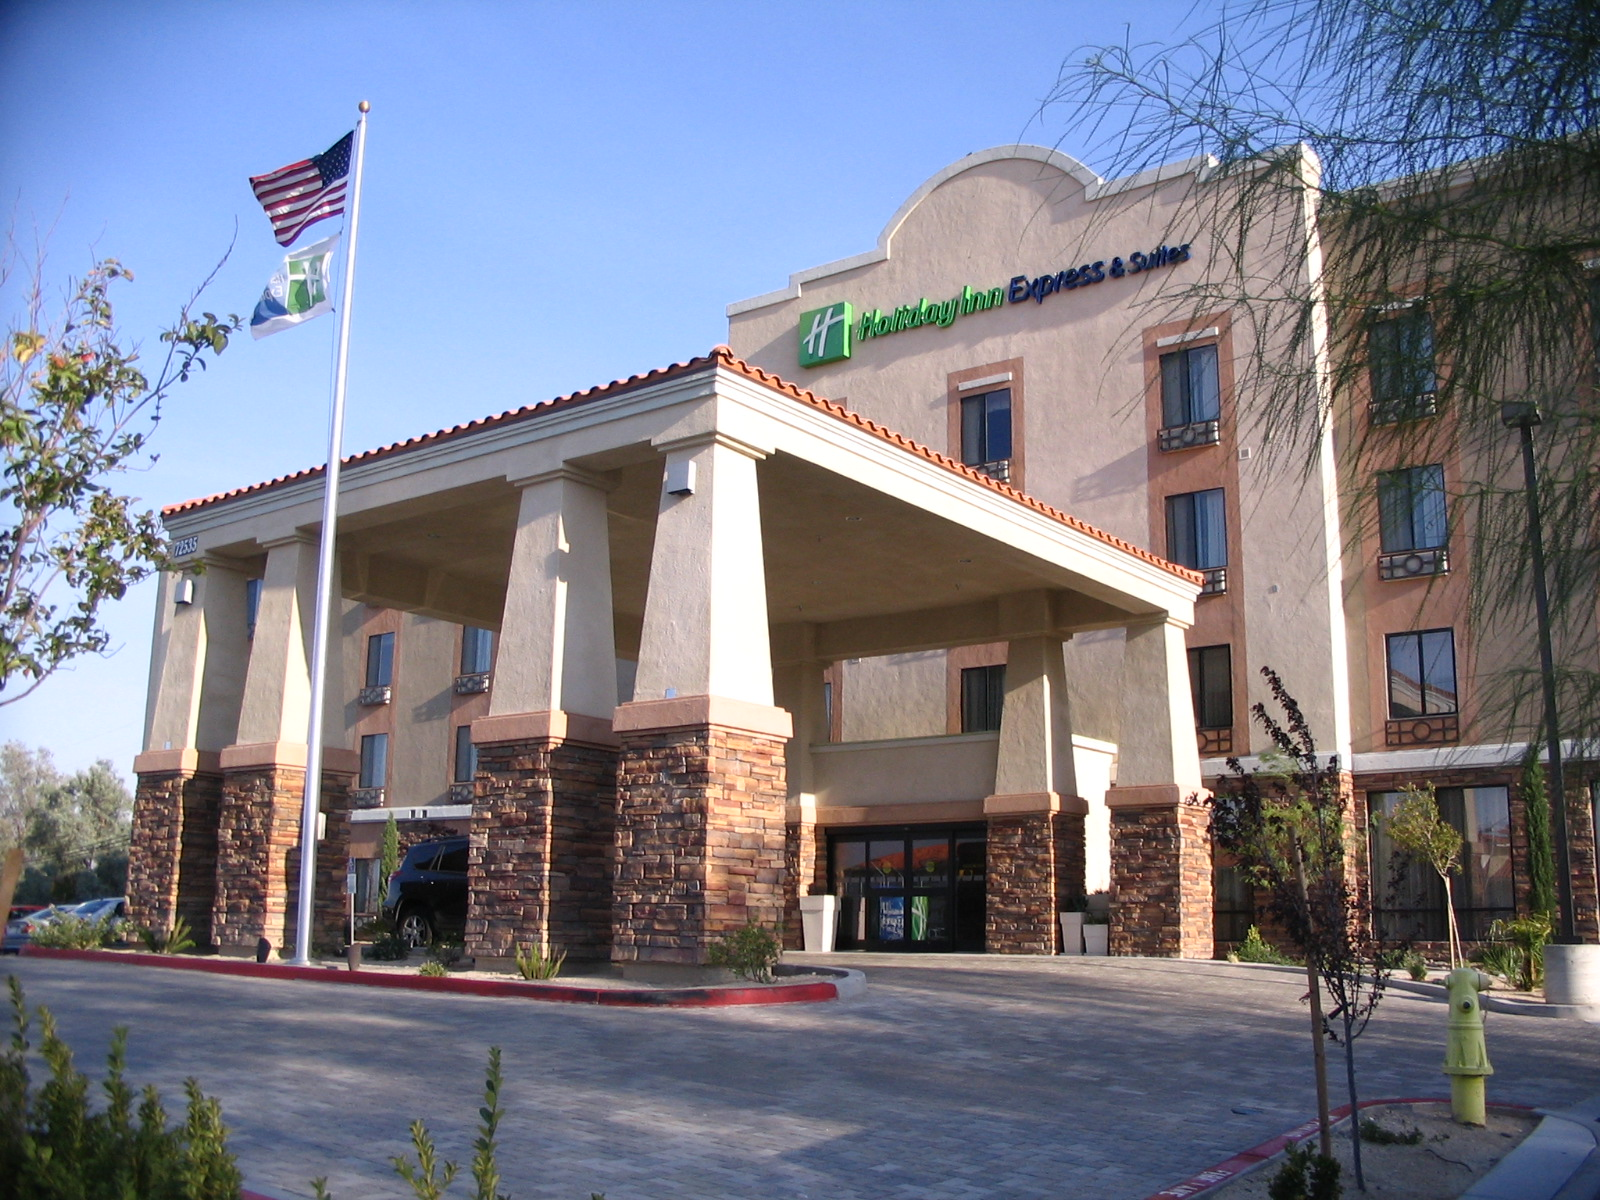 Holiday Inn Express - Twentynine Palms